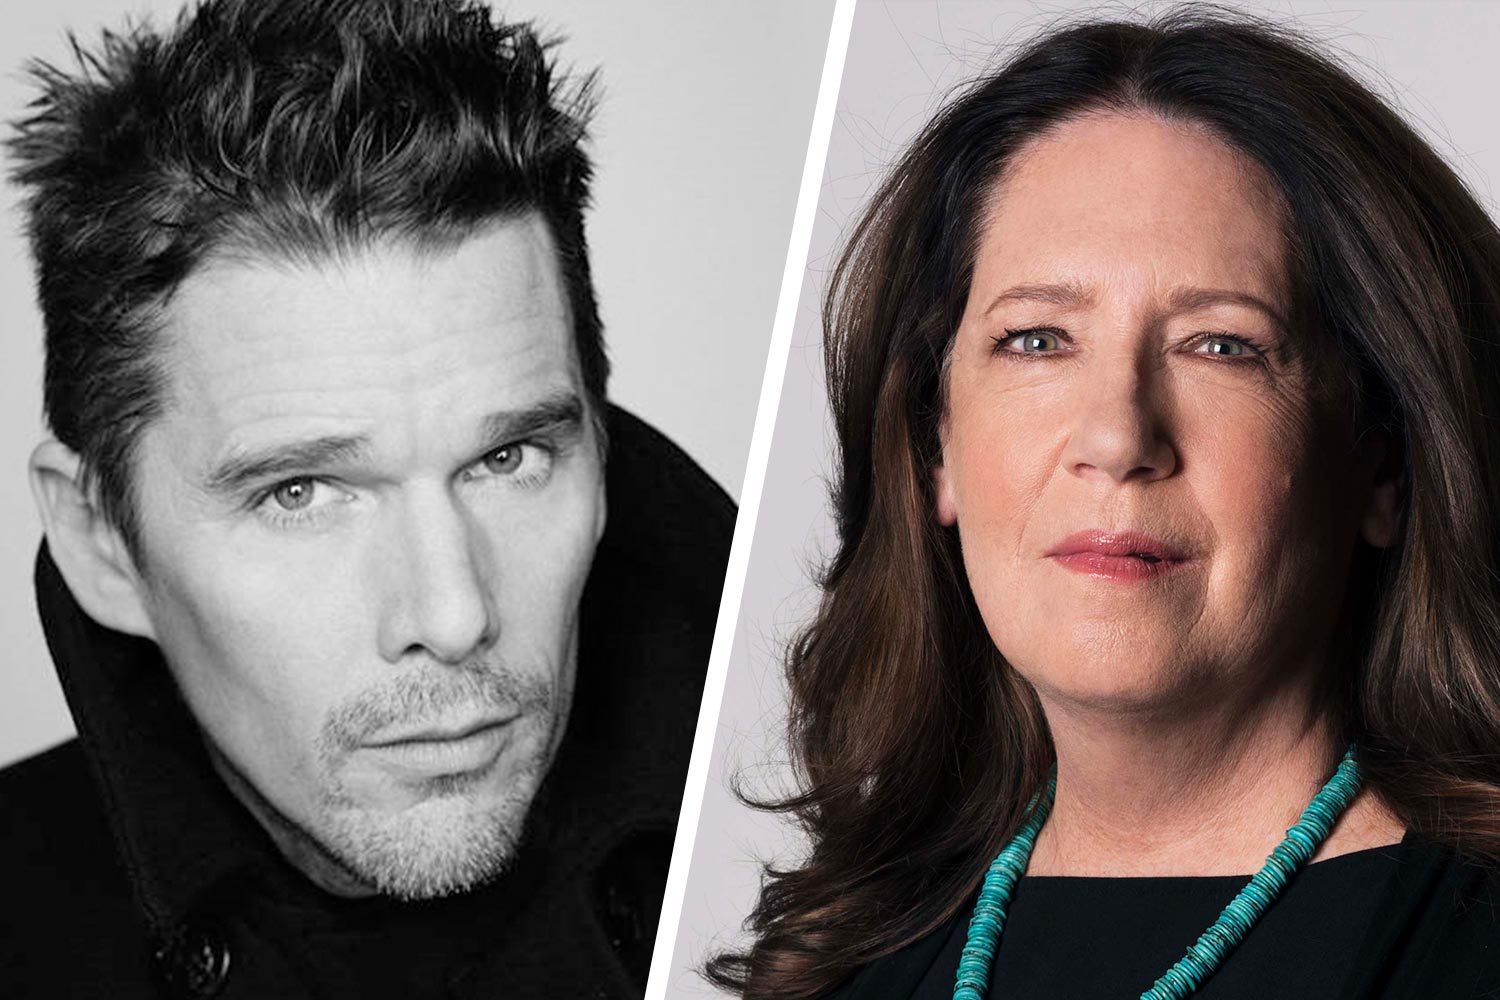 Ethan Hawke, left, and Ann Dowd are among the special guests. (Photos courtesy Virginia Film Festival)